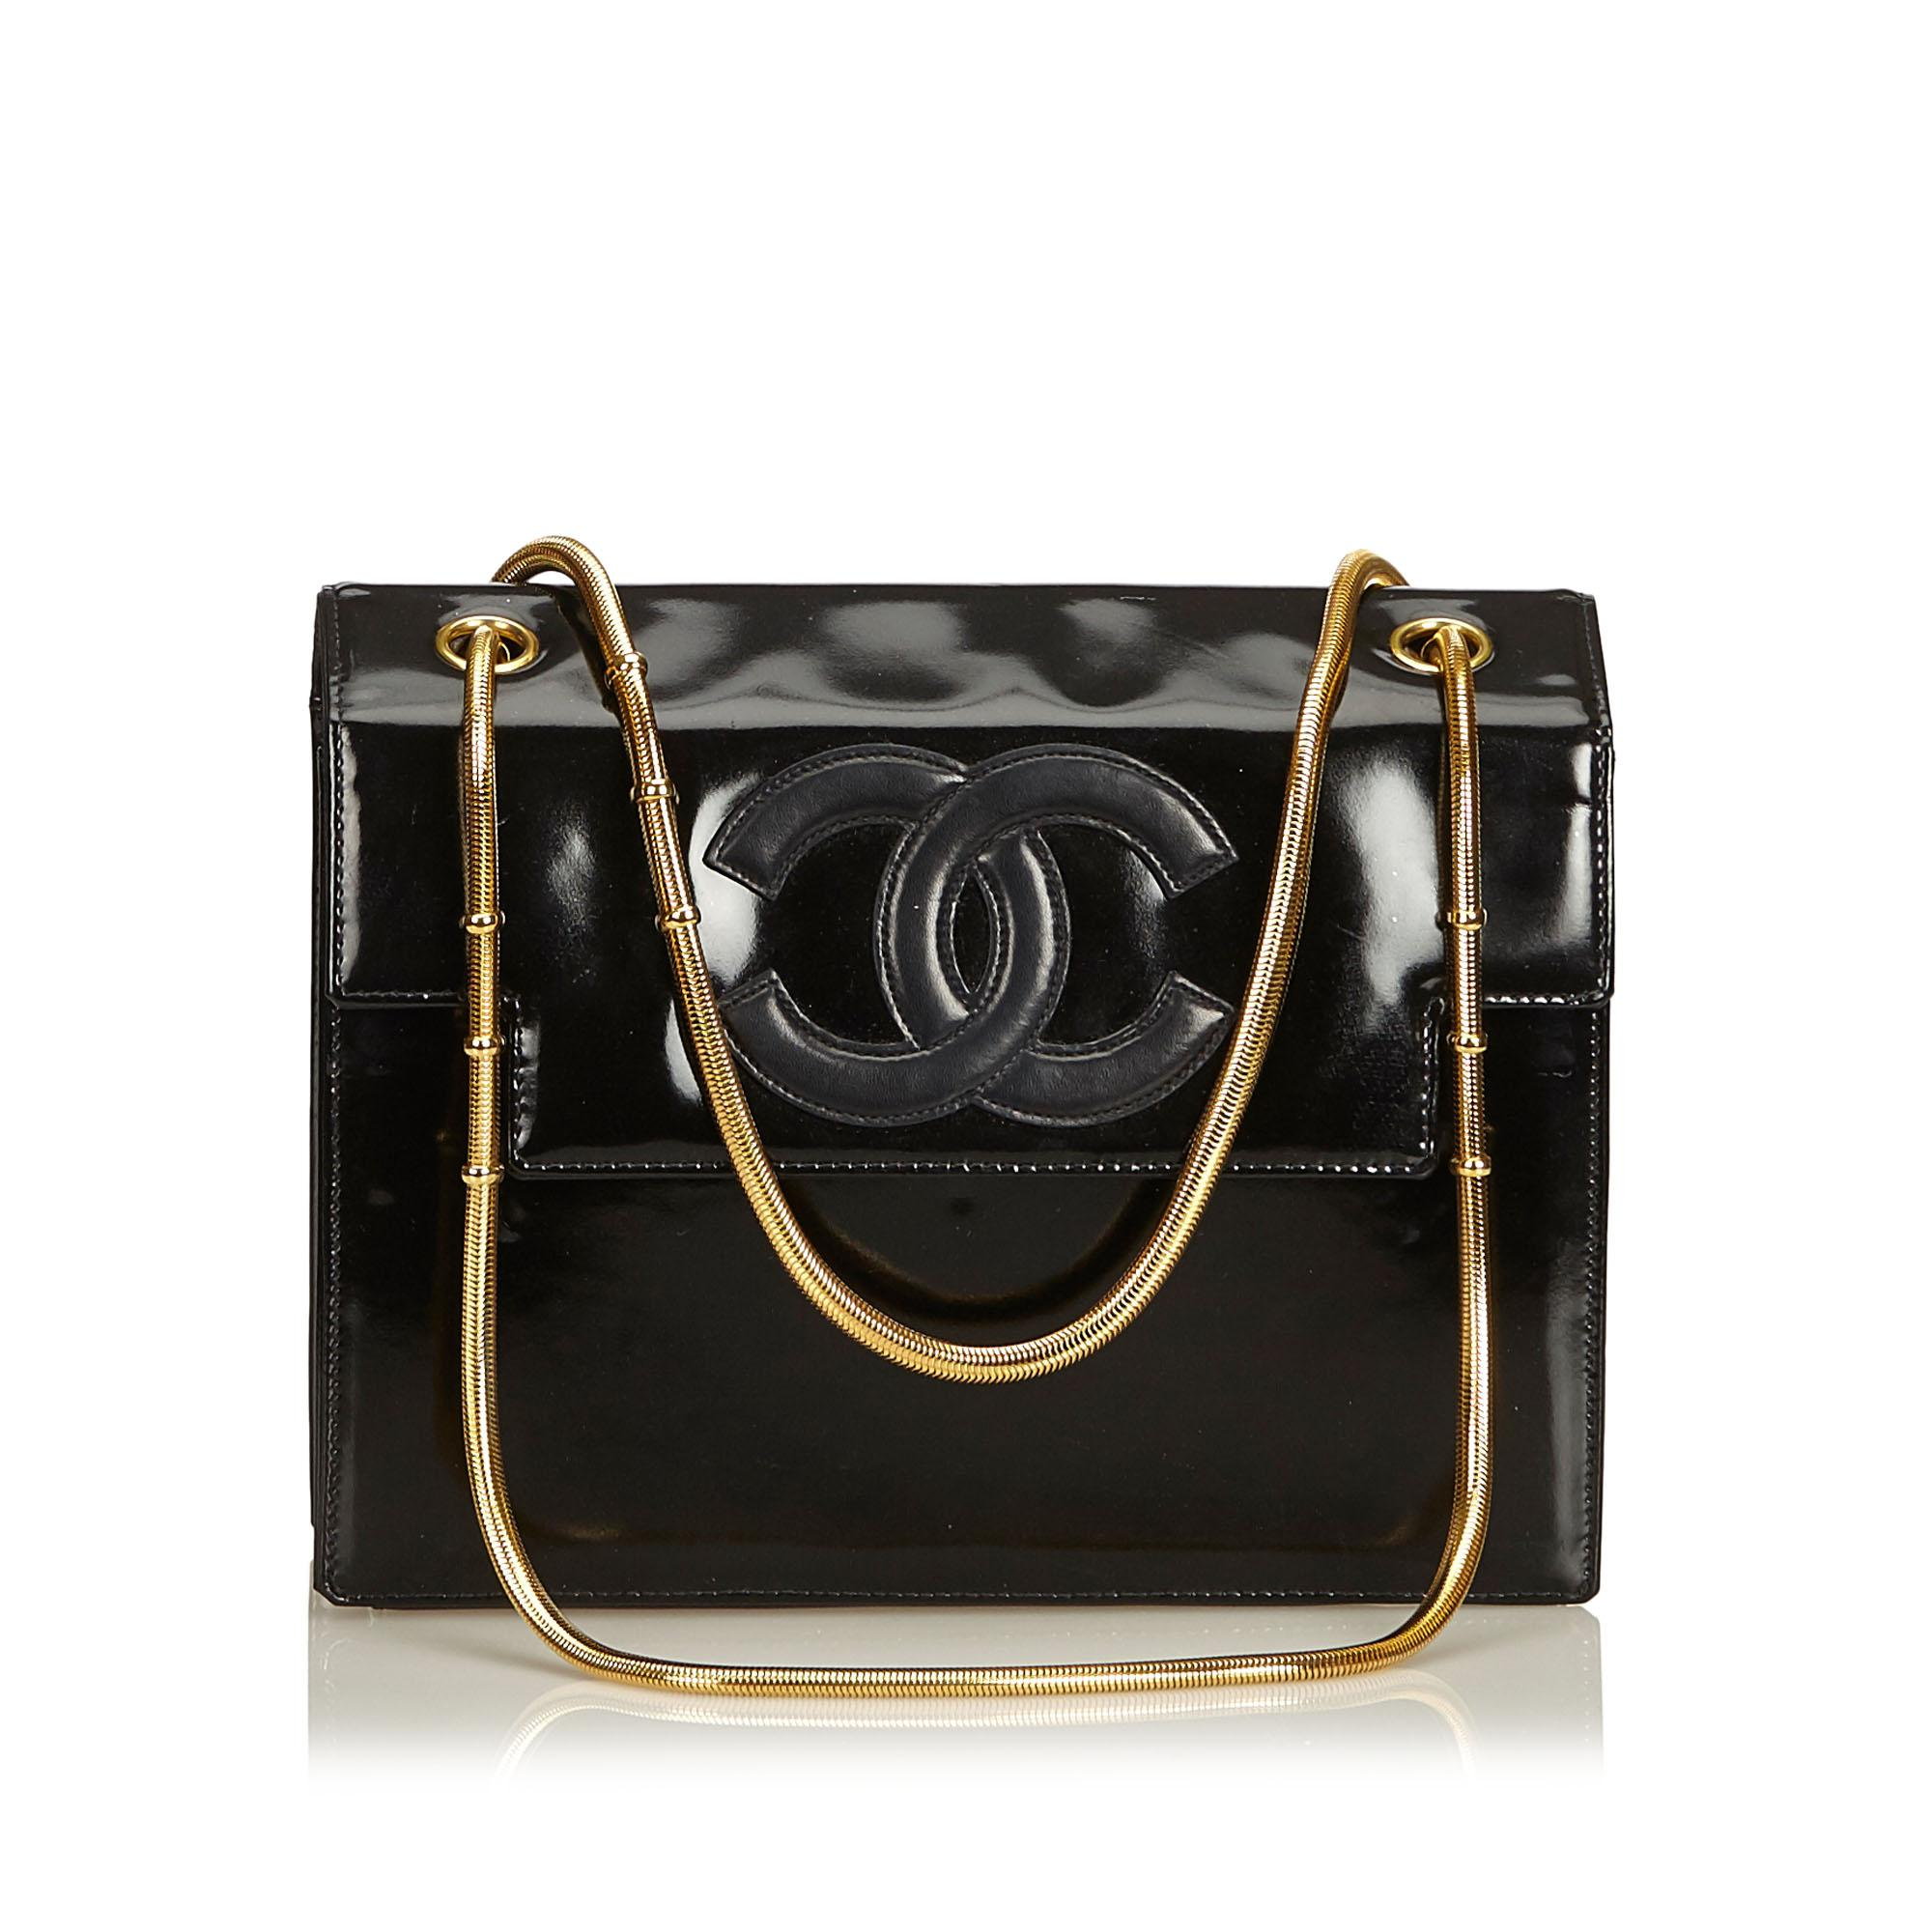 3ffe51435dbd Lyst - Chanel Snake Chain Patent Leather Shoulder Bag in Black